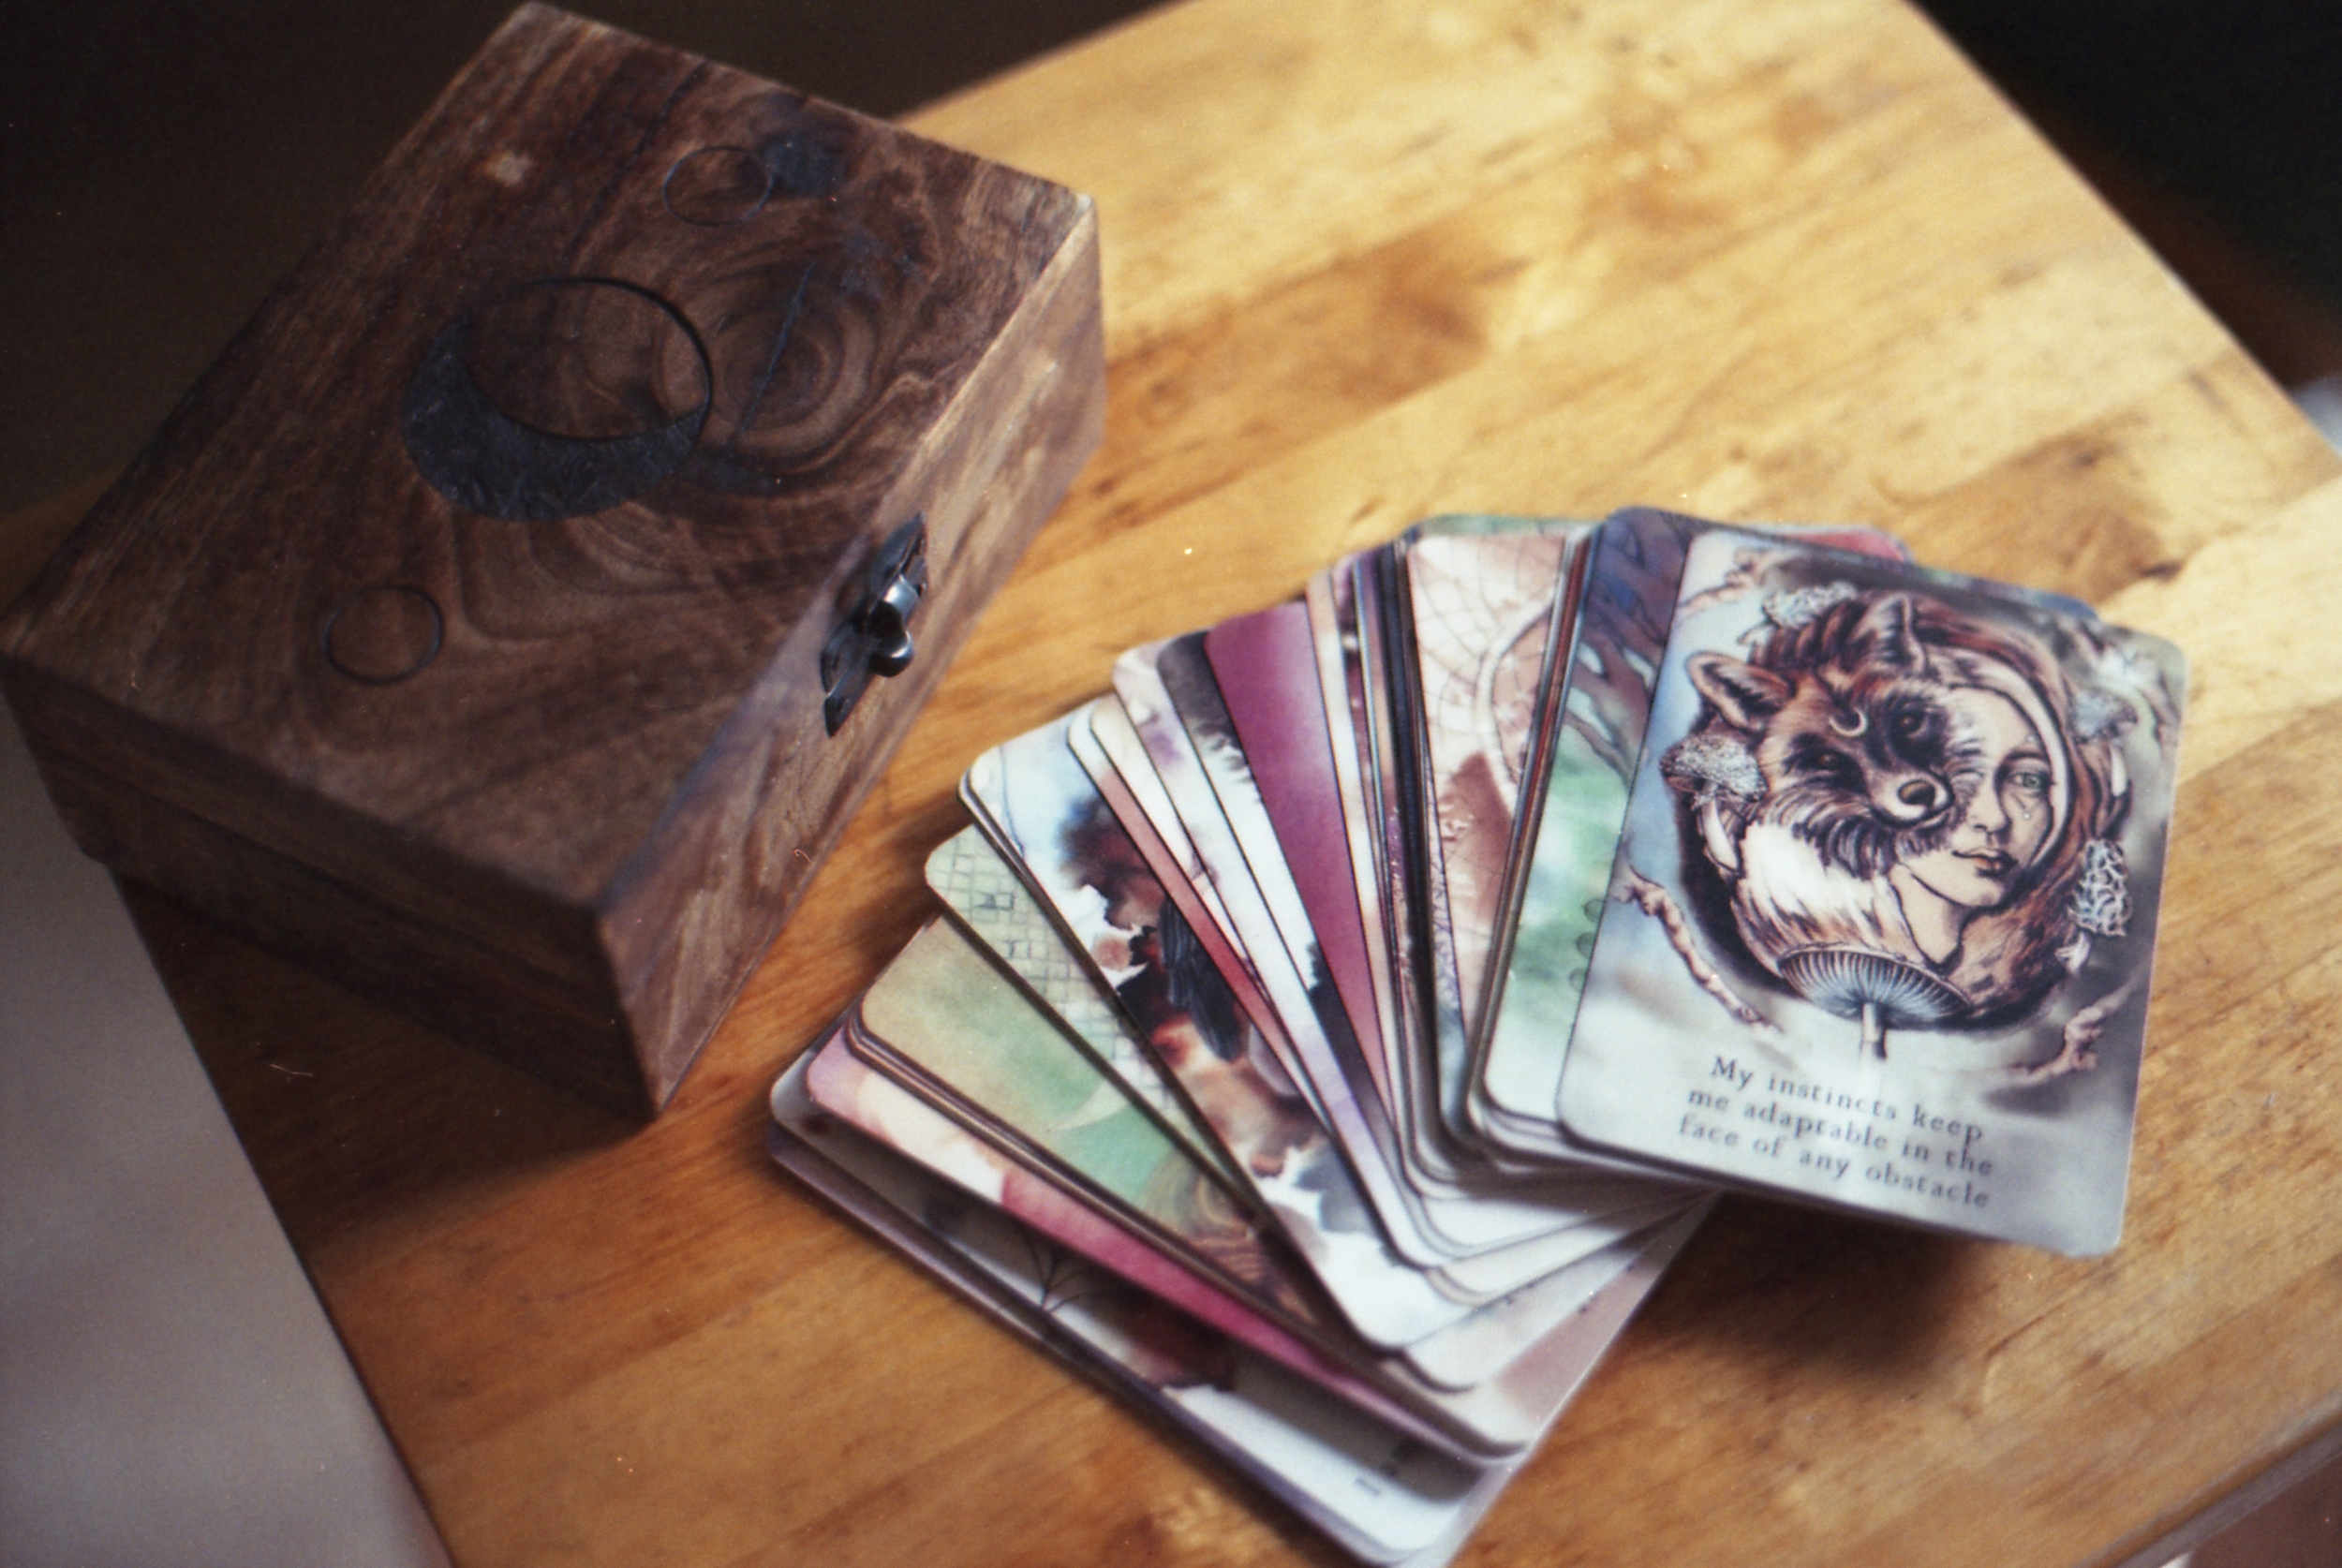 203/366 - After saying I wouldn't buy any more cards, I bought the Moon Deck oracle... Oops. But it is so very lovely.